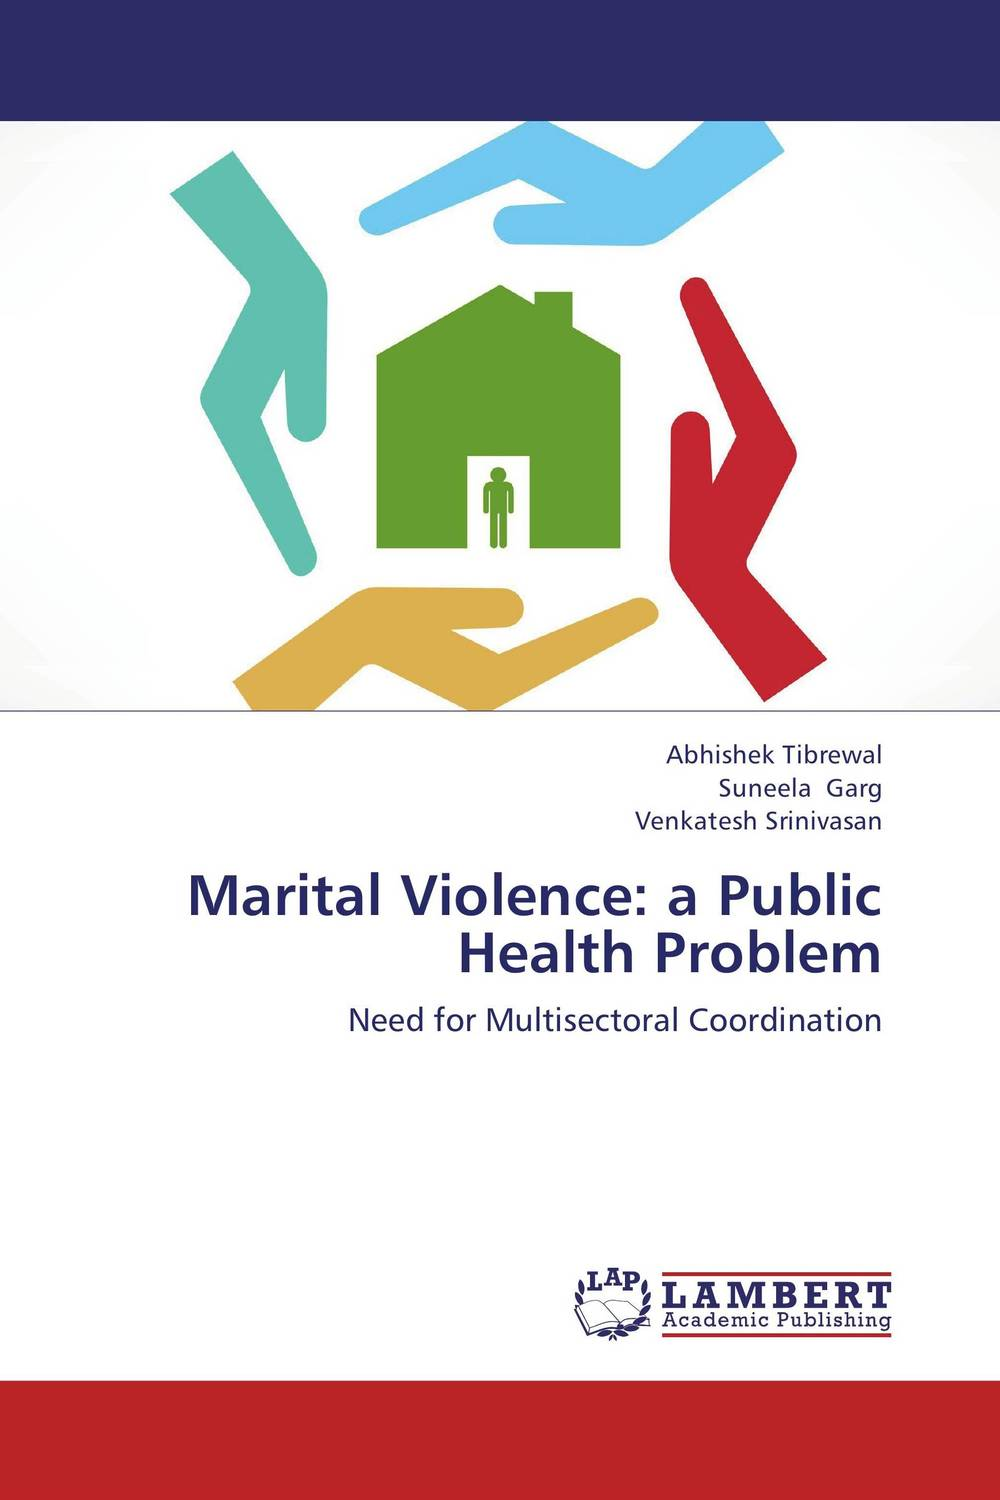 Marital Violence: a Public Health Problem helina befekadu the nature and effect of emotional violence